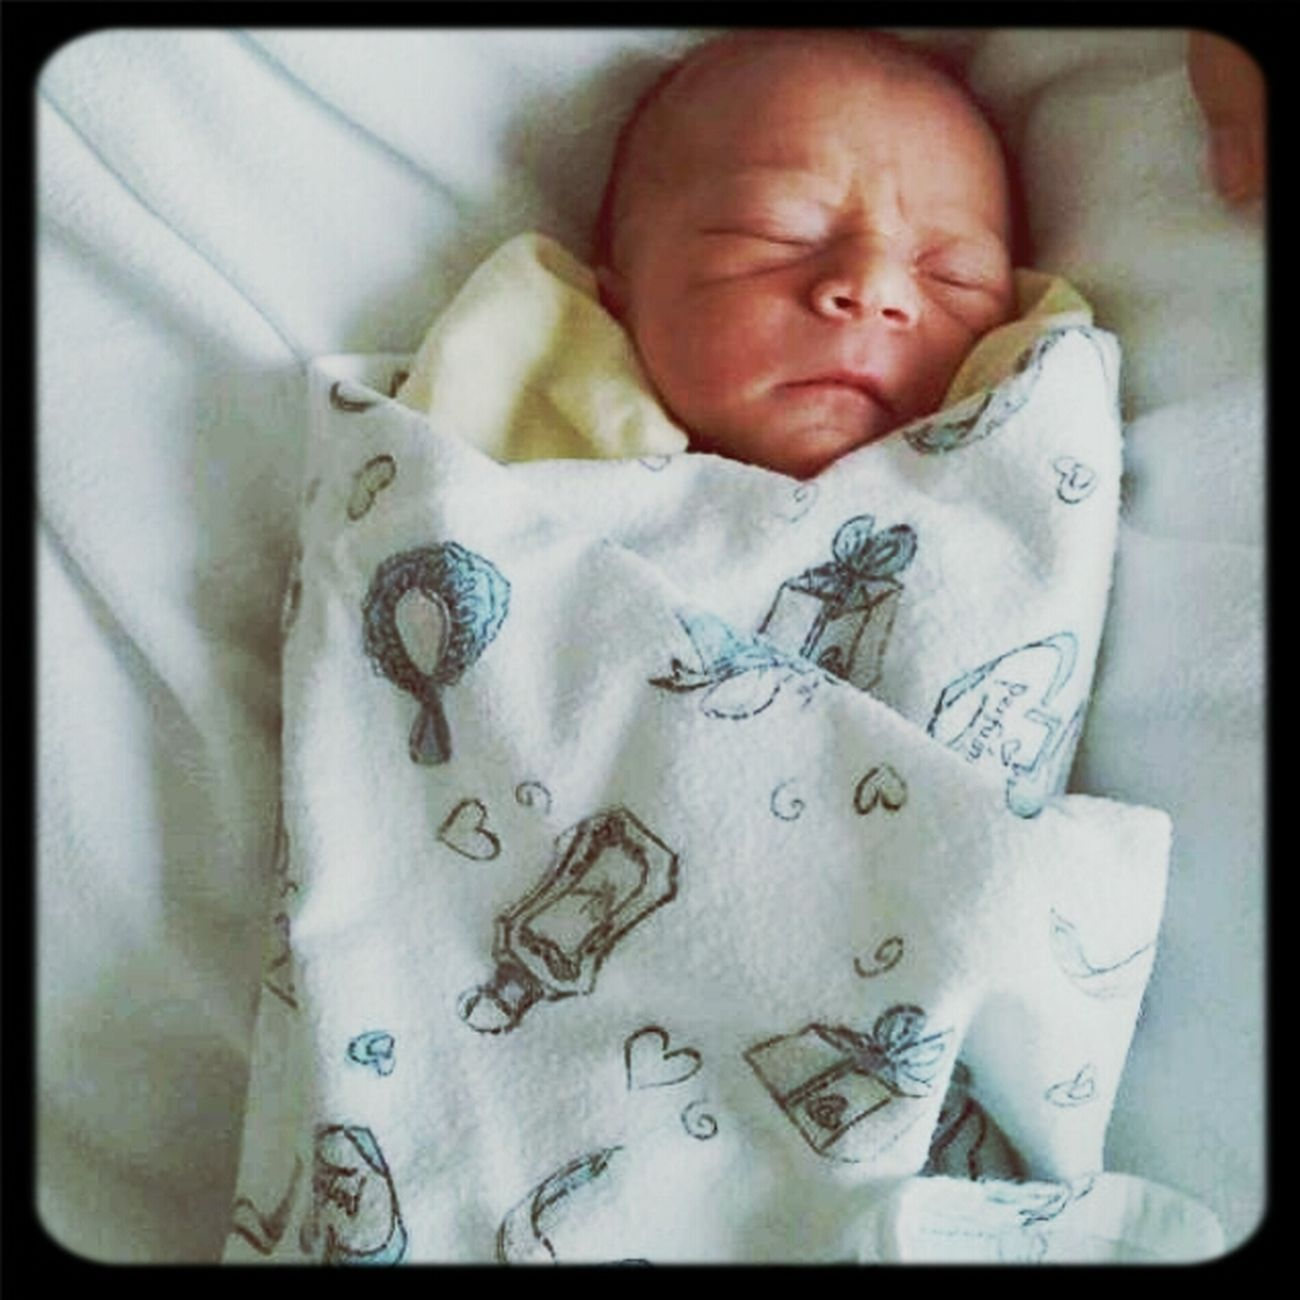 Baby Boy New Born My Nephew 1 Day Old